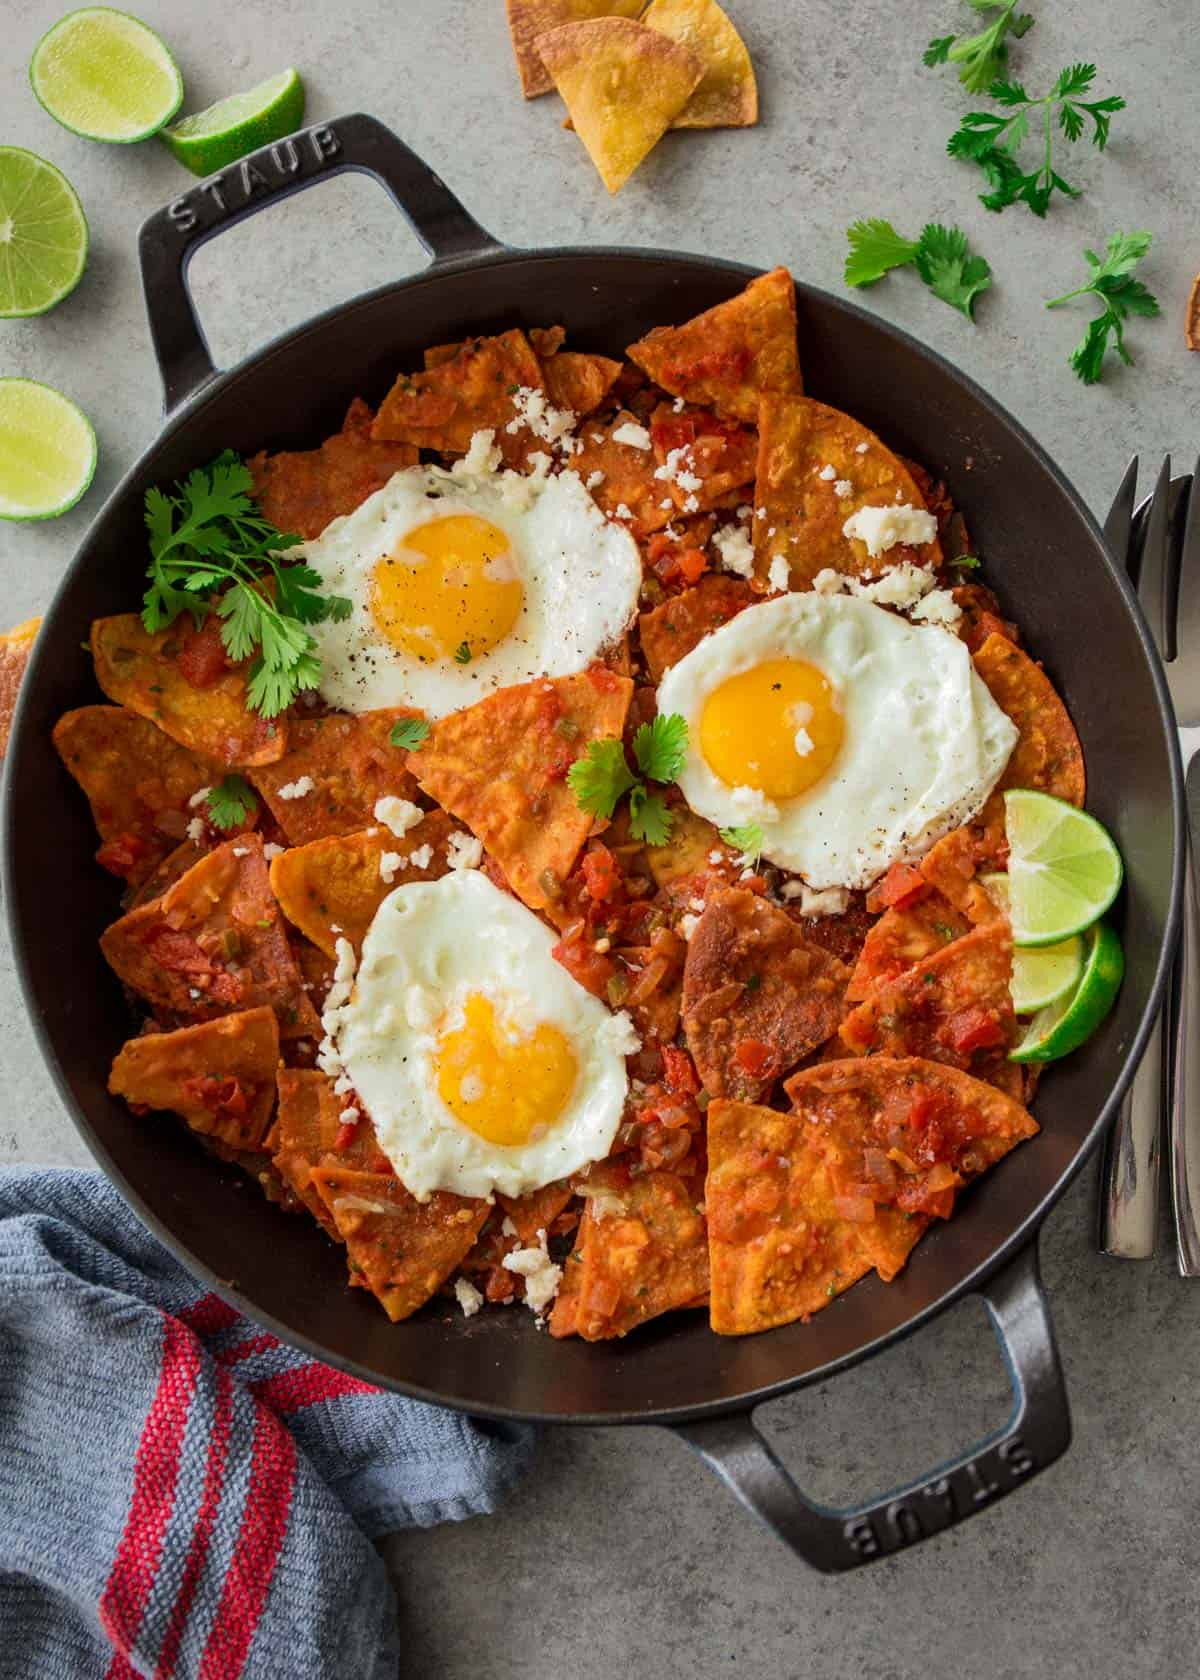 chips, tomatoes and fried eggs in a cast iron skillet